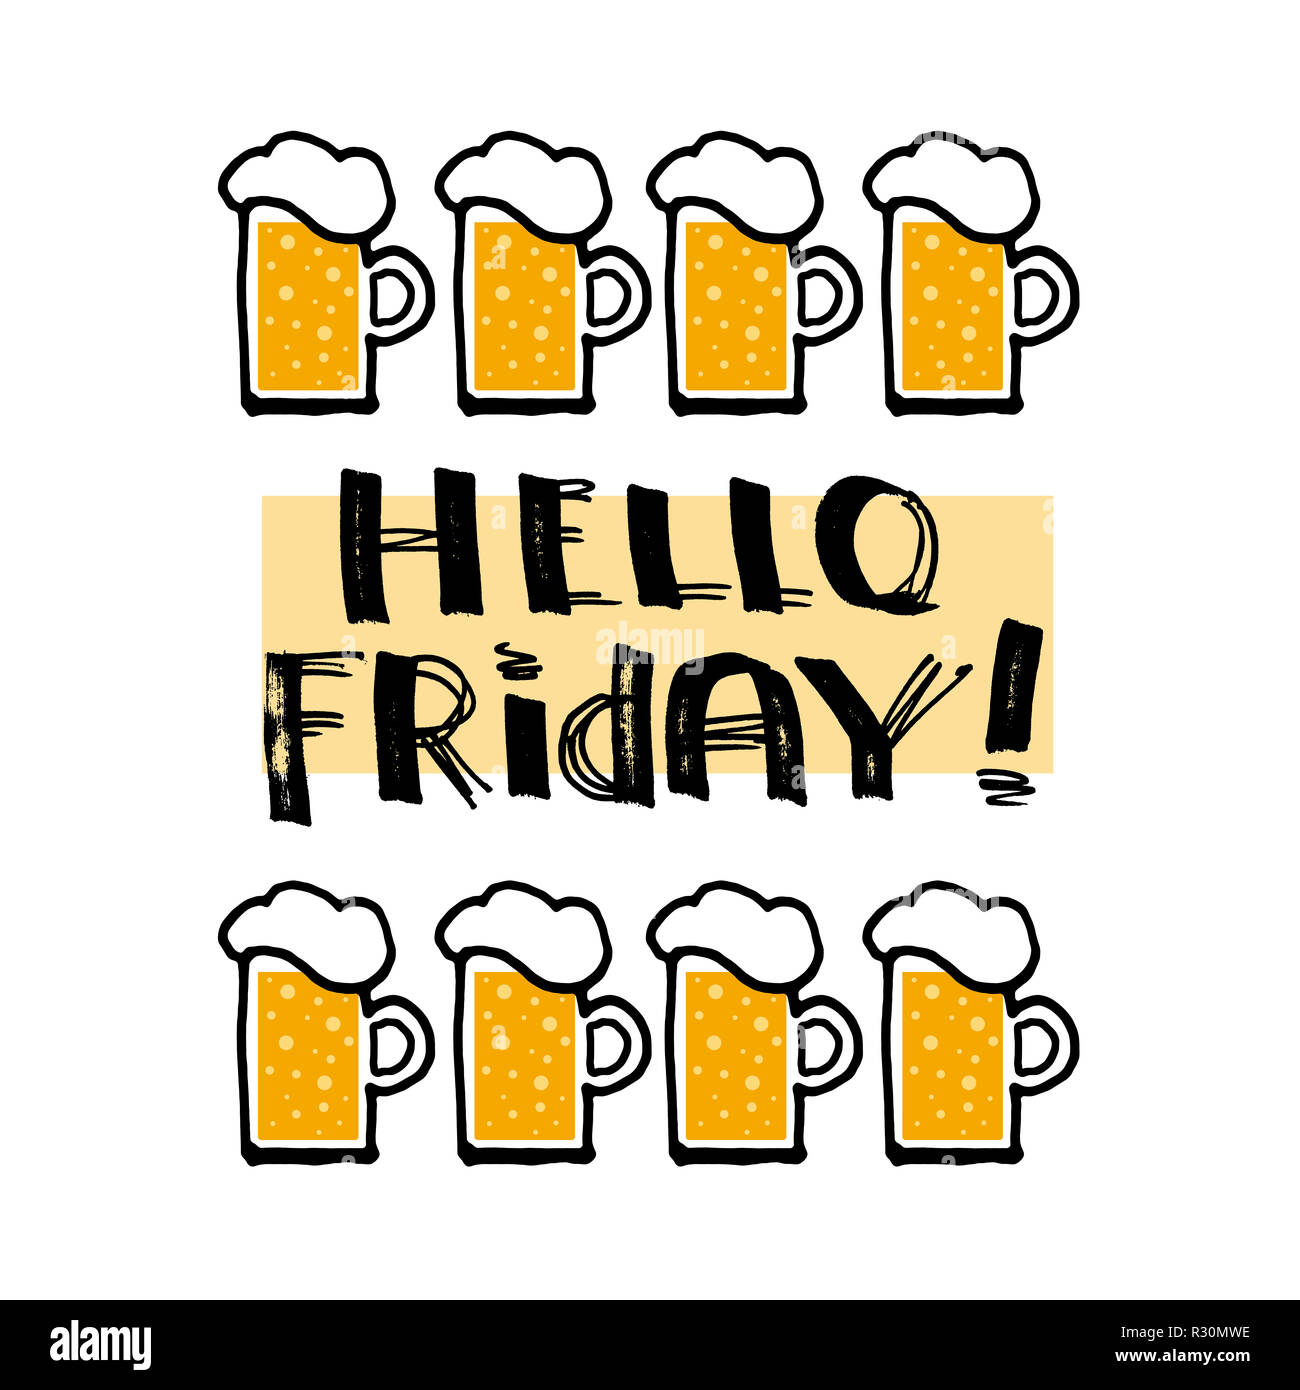 Hello Friday! Lettering, funny design for t-shirt or poster